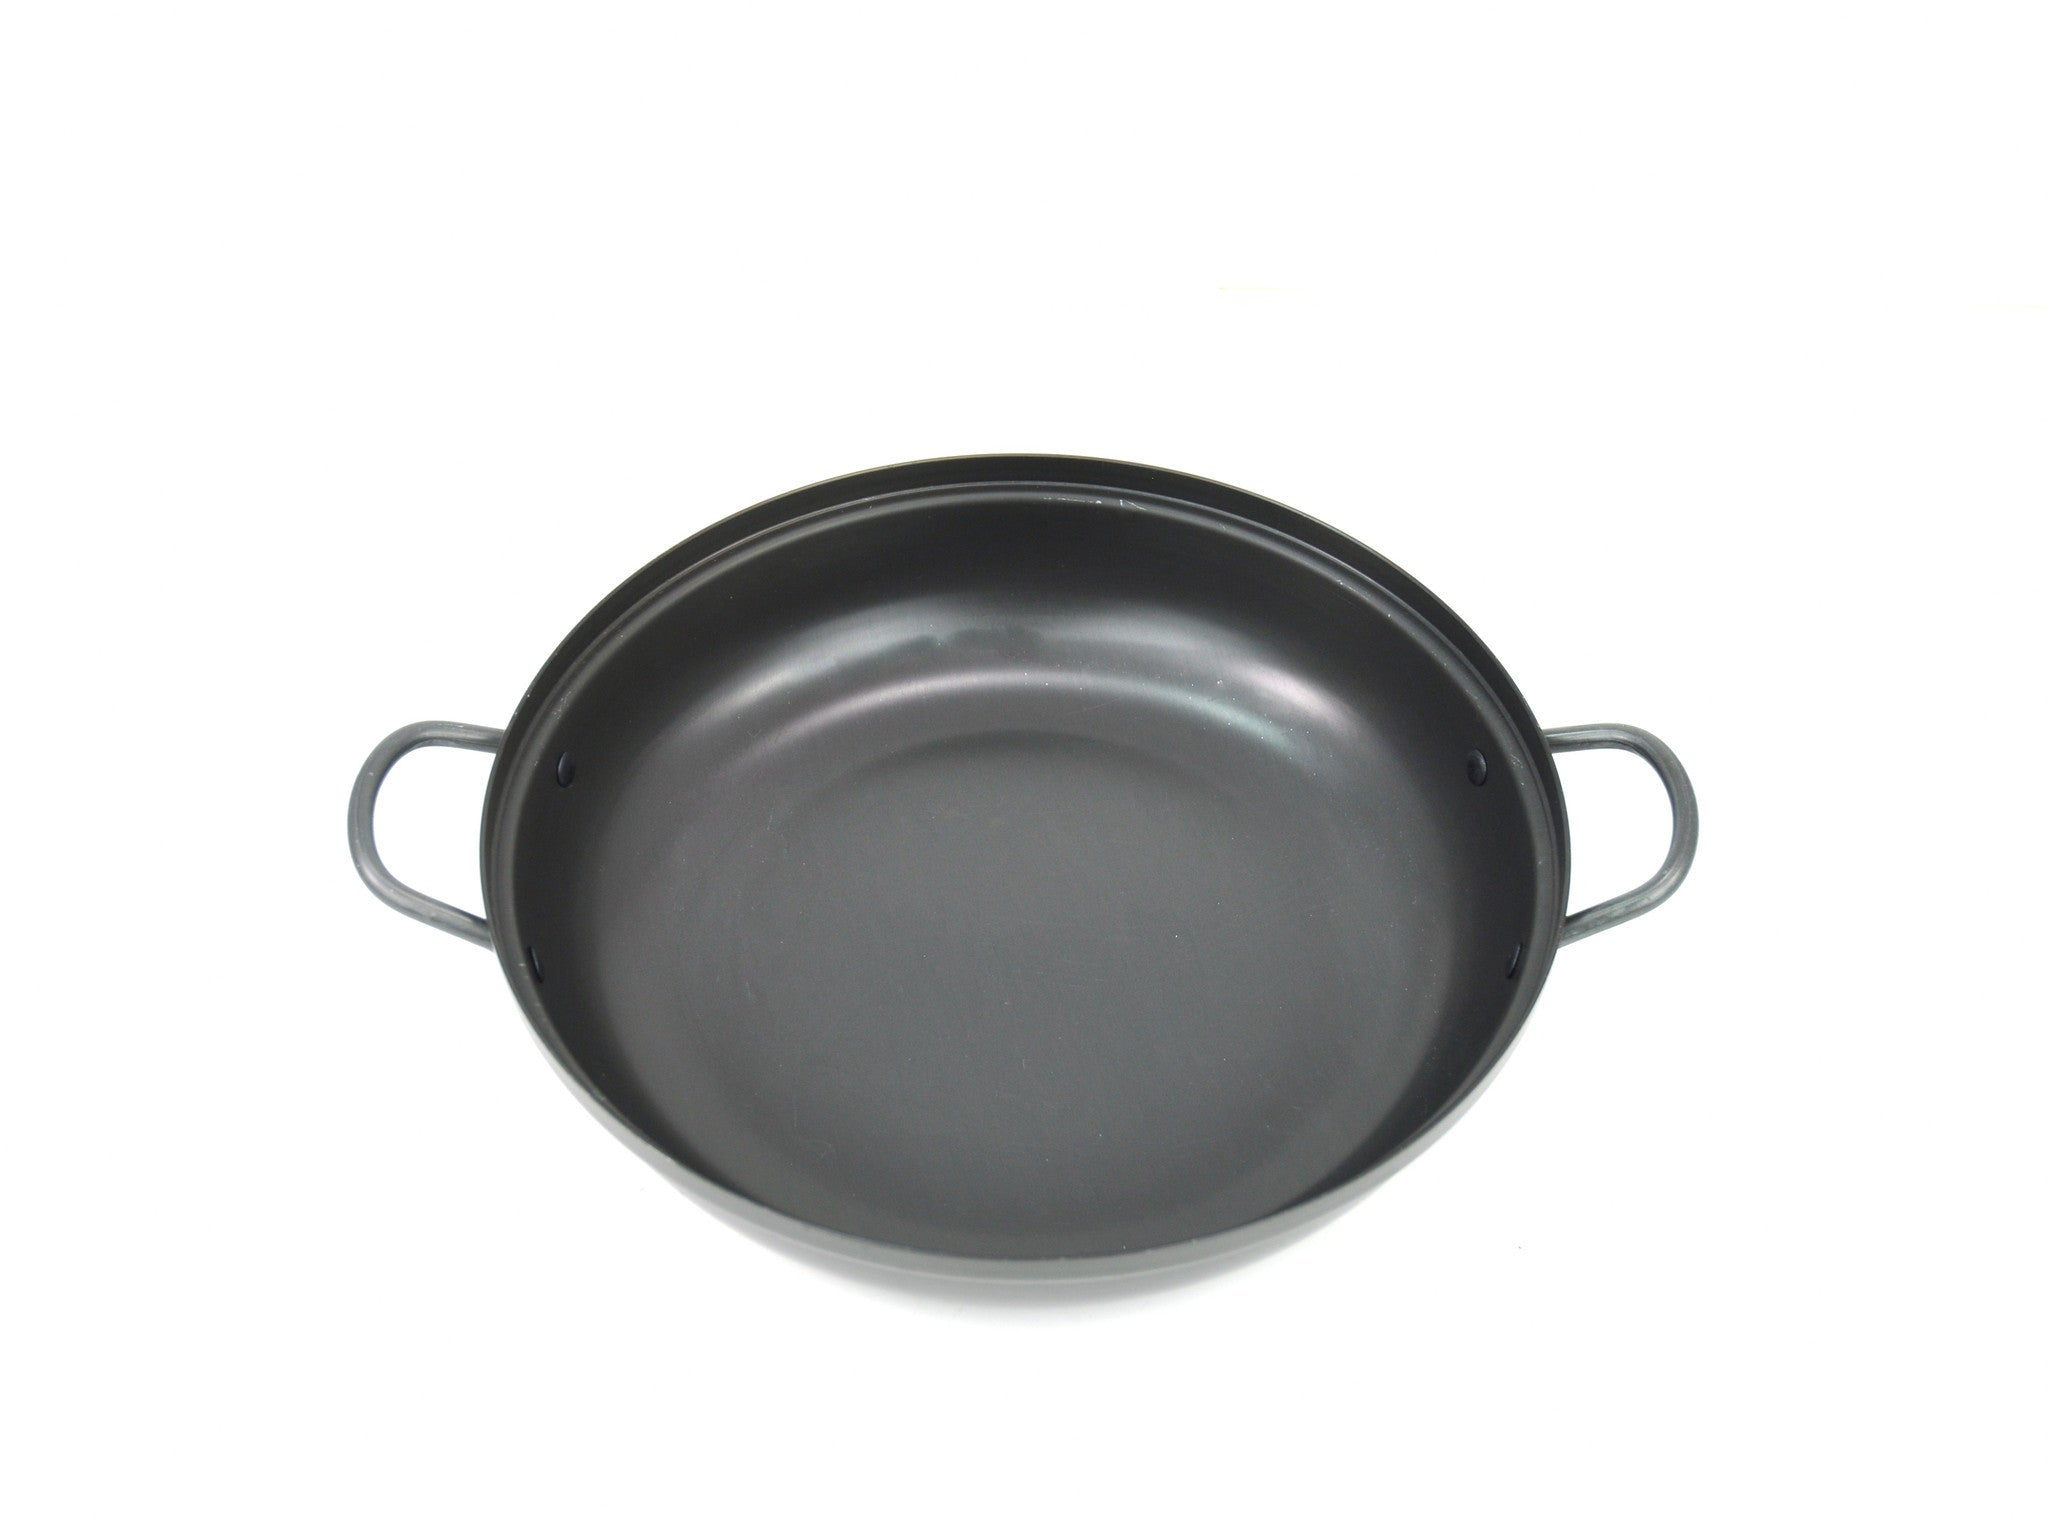 Anodized Aluminum Korean Stew Pot, Low 경질 낮은 전골 냄비 (Case), Aluminum - eKitchenary